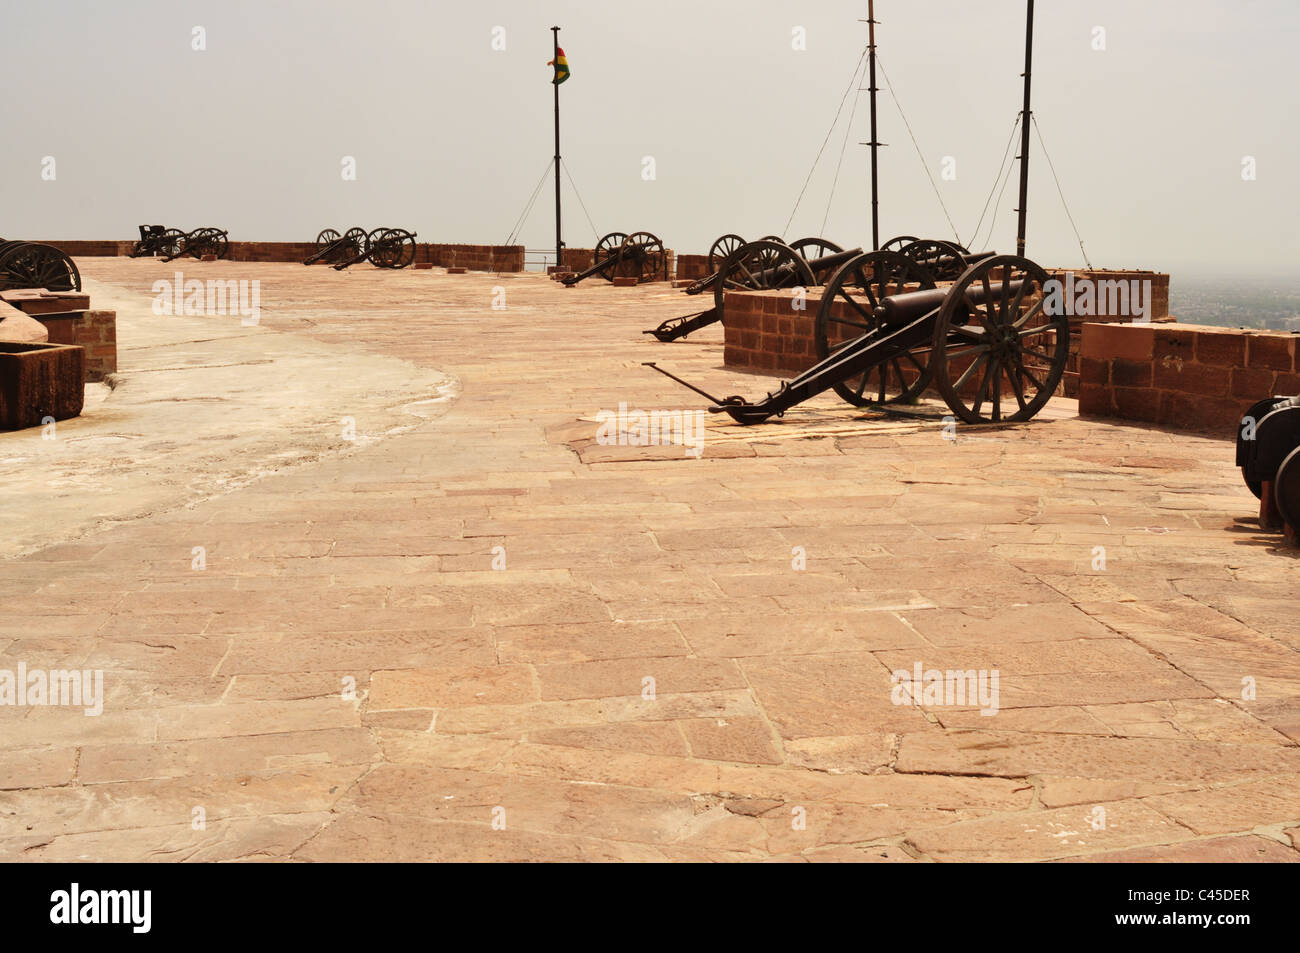 View of Antique Guns in Mehrangarh fort Jodhpur. - Stock Image